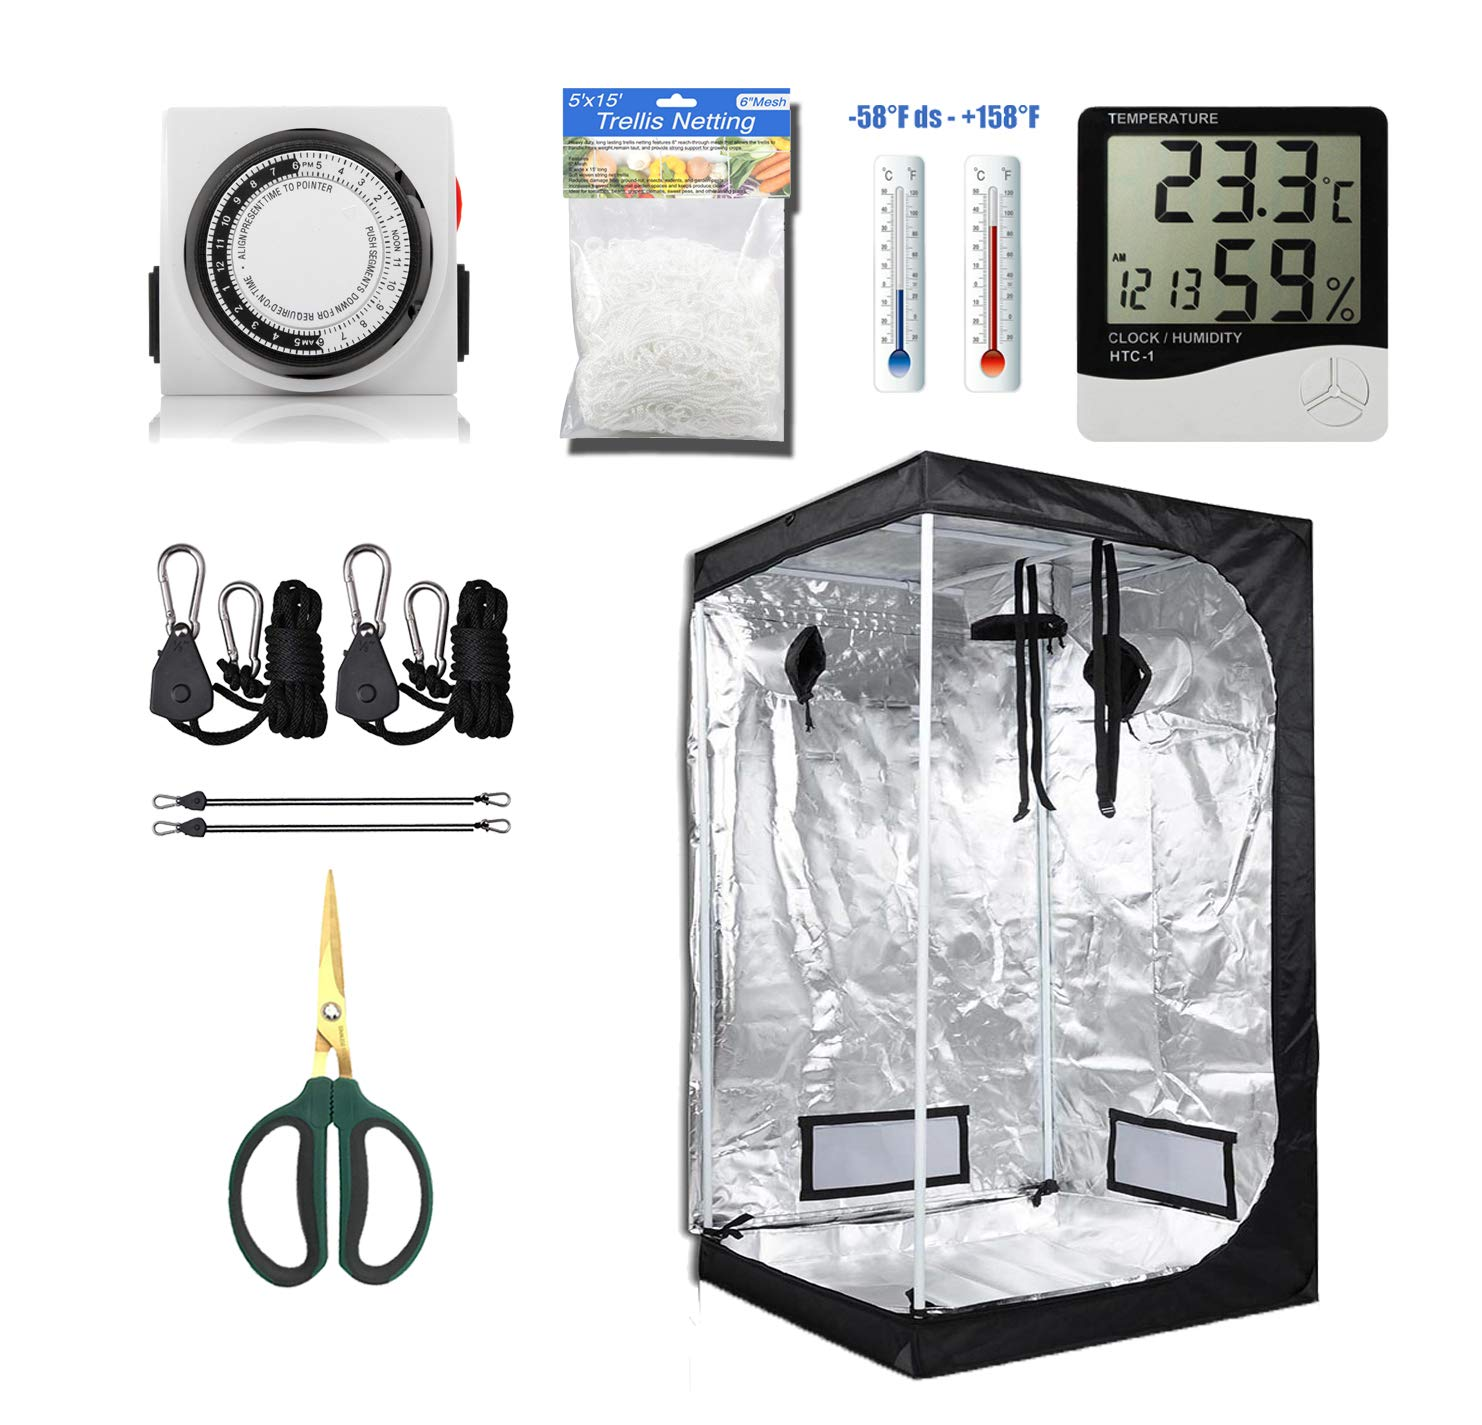 GreenHouser High Reflective 36''x36''x72'' Grow Tent Room+24 Hours Timer+Temperature HumidityHangers+Bonsai Shears+Netting Trellis for Hydroponics Indoor Planting System